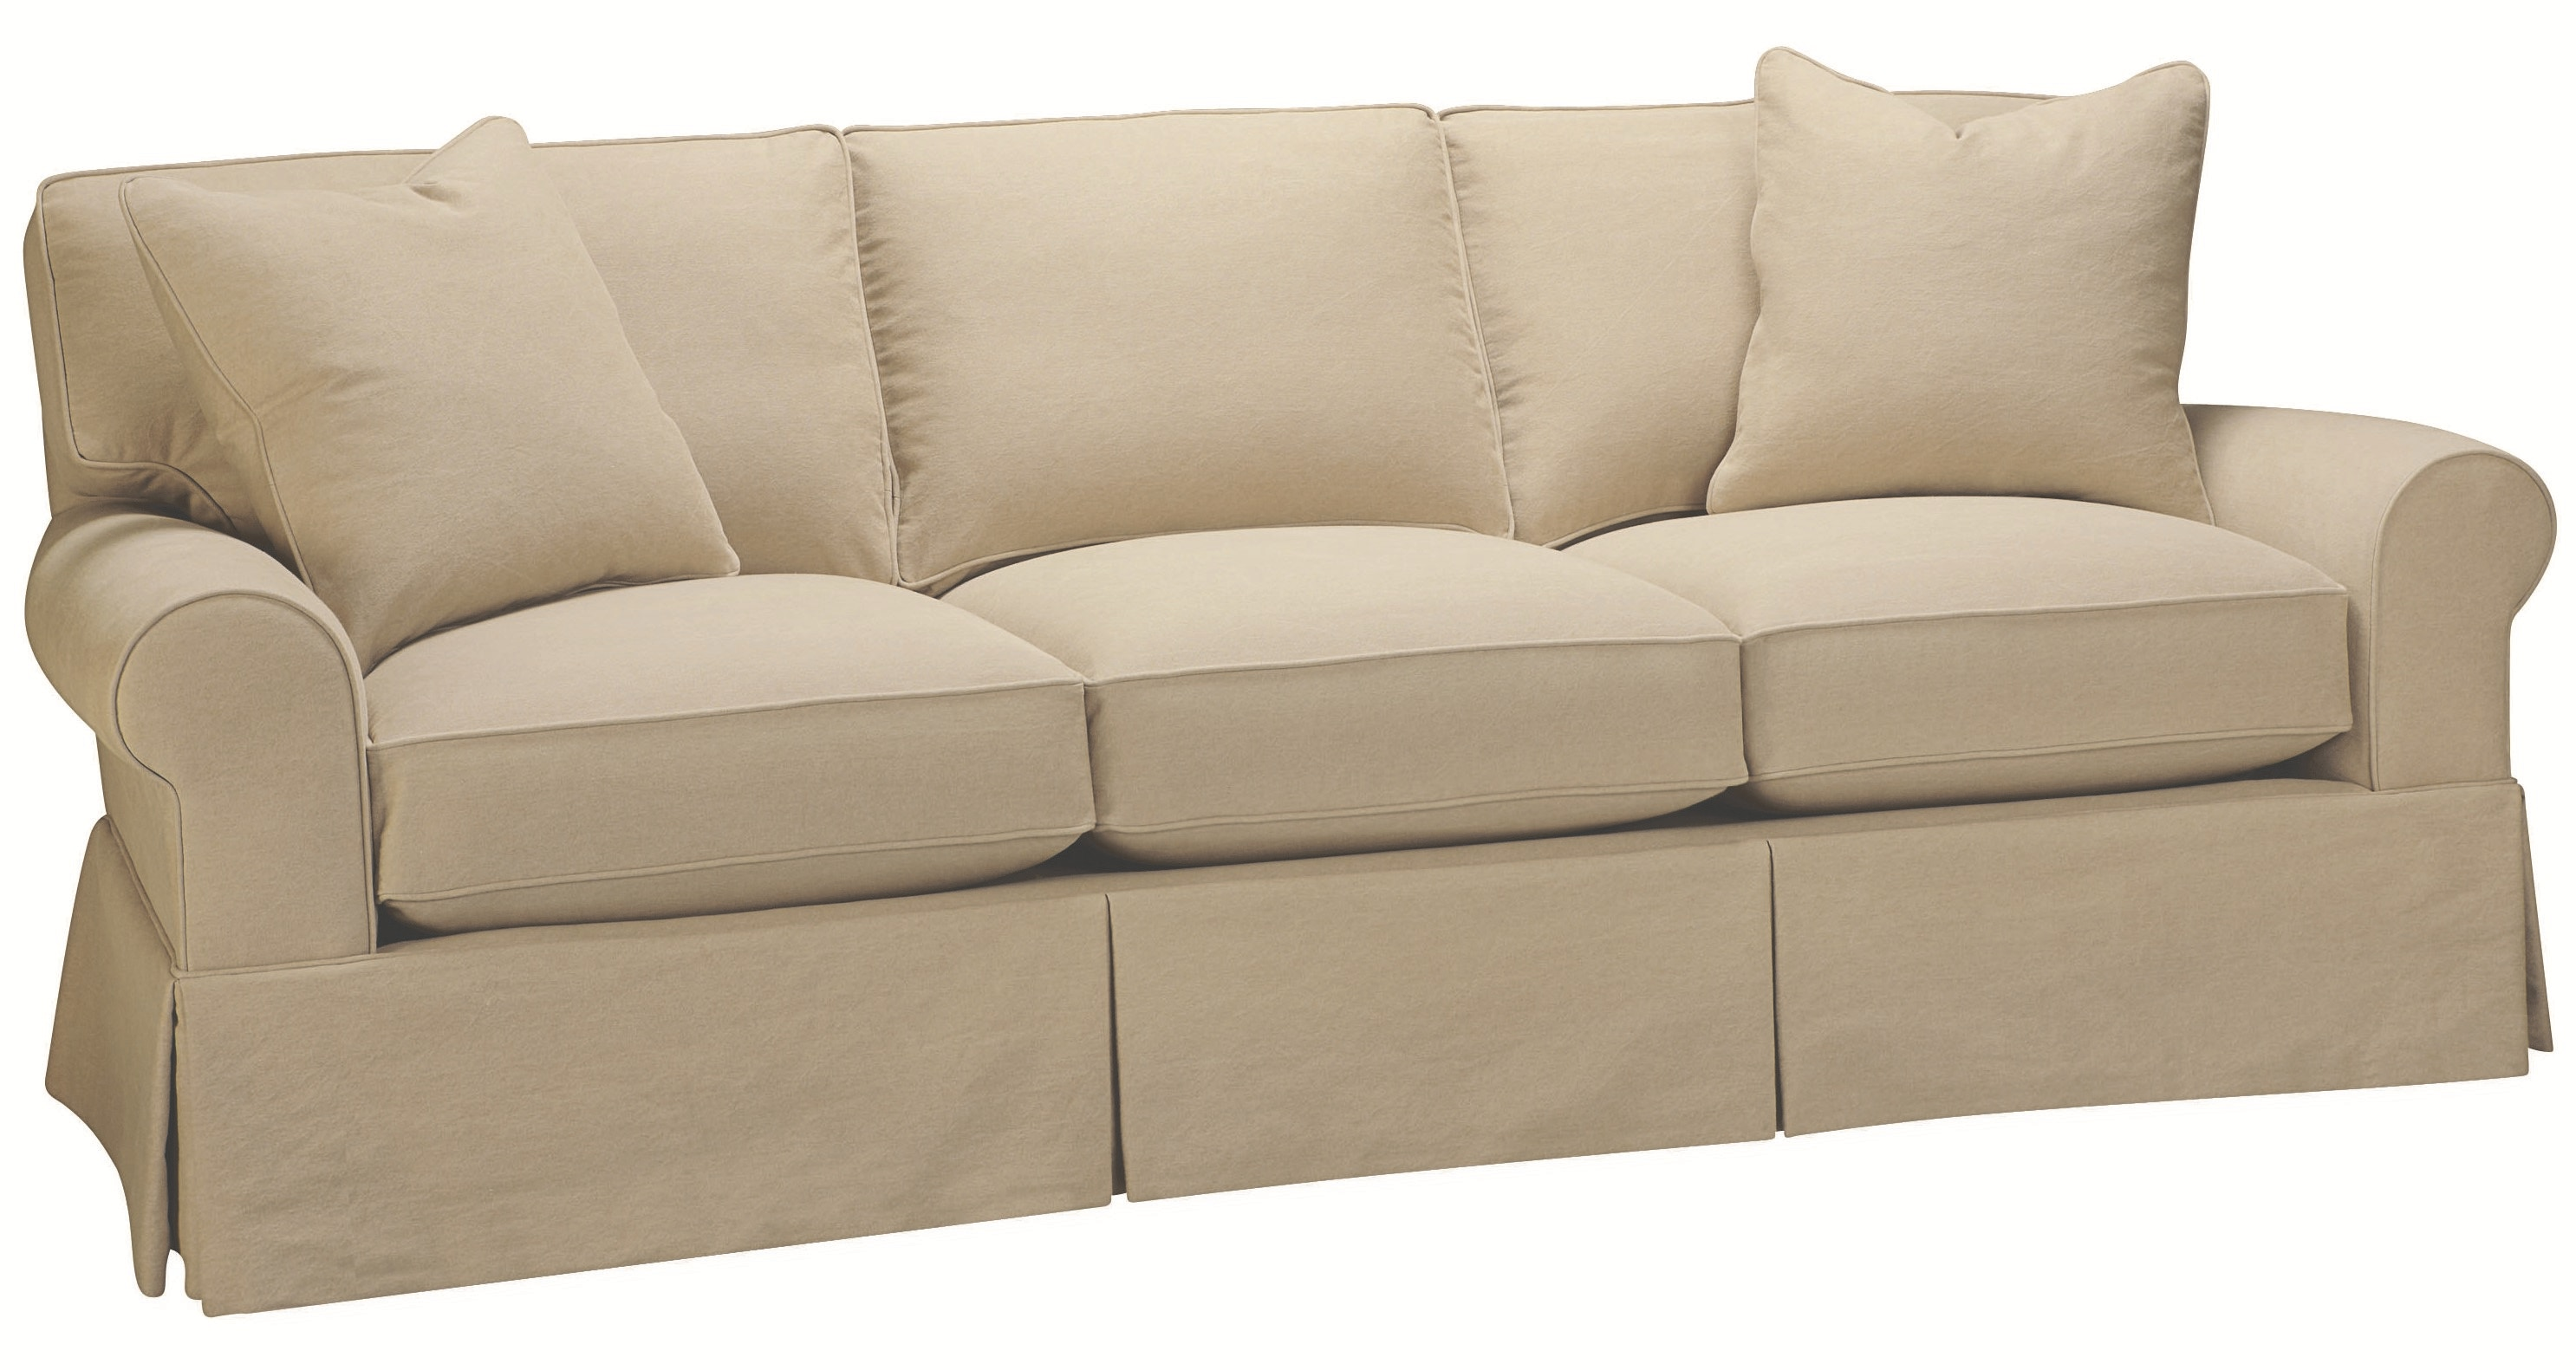 sofa virginia beach old sofas made new lee industries living room 2375 03 exotic home